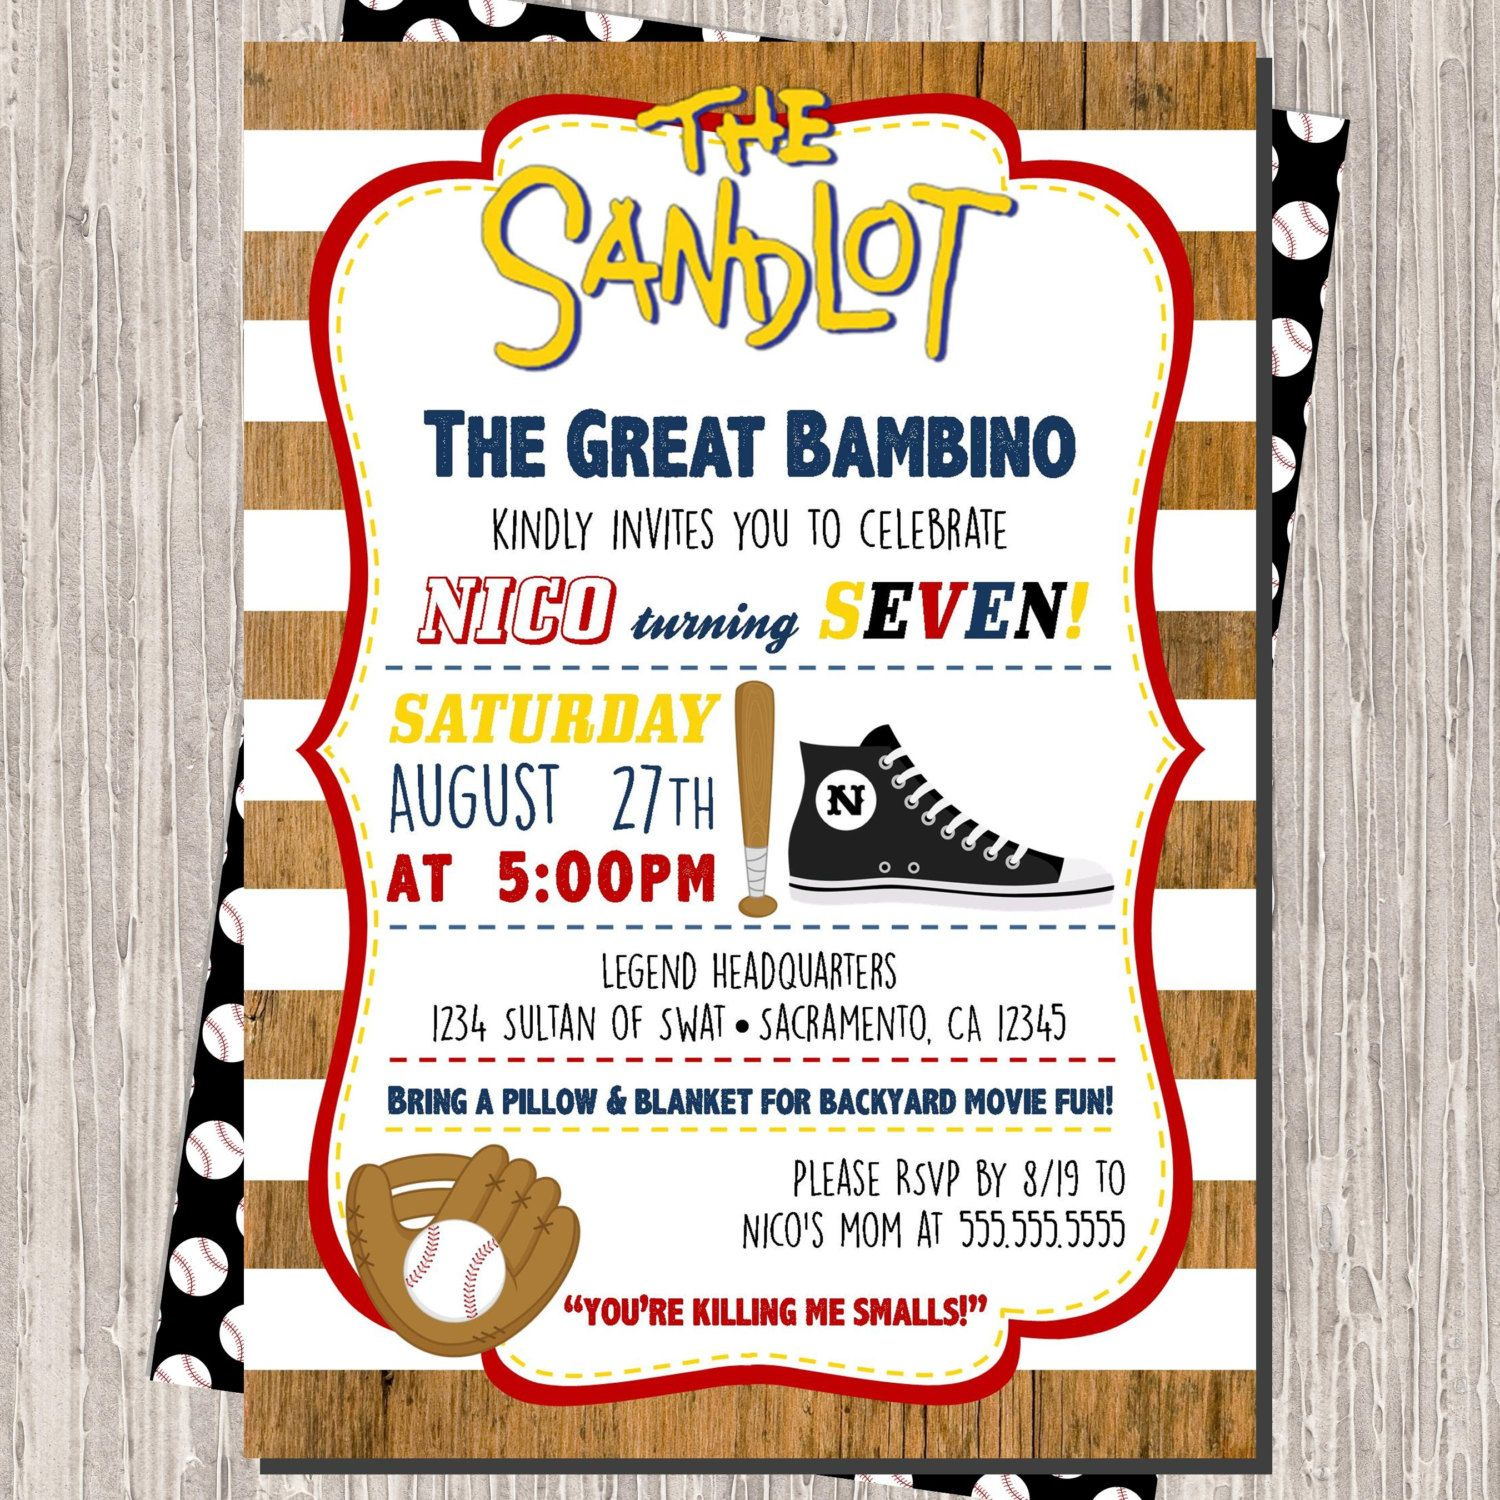 Sandlot birthday invitation baseball birthday invitation the sandlot birthday invitation baseball birthday invitation the sandlot movie birthday printable print at home by pickledoodledesigns on etsy stopboris